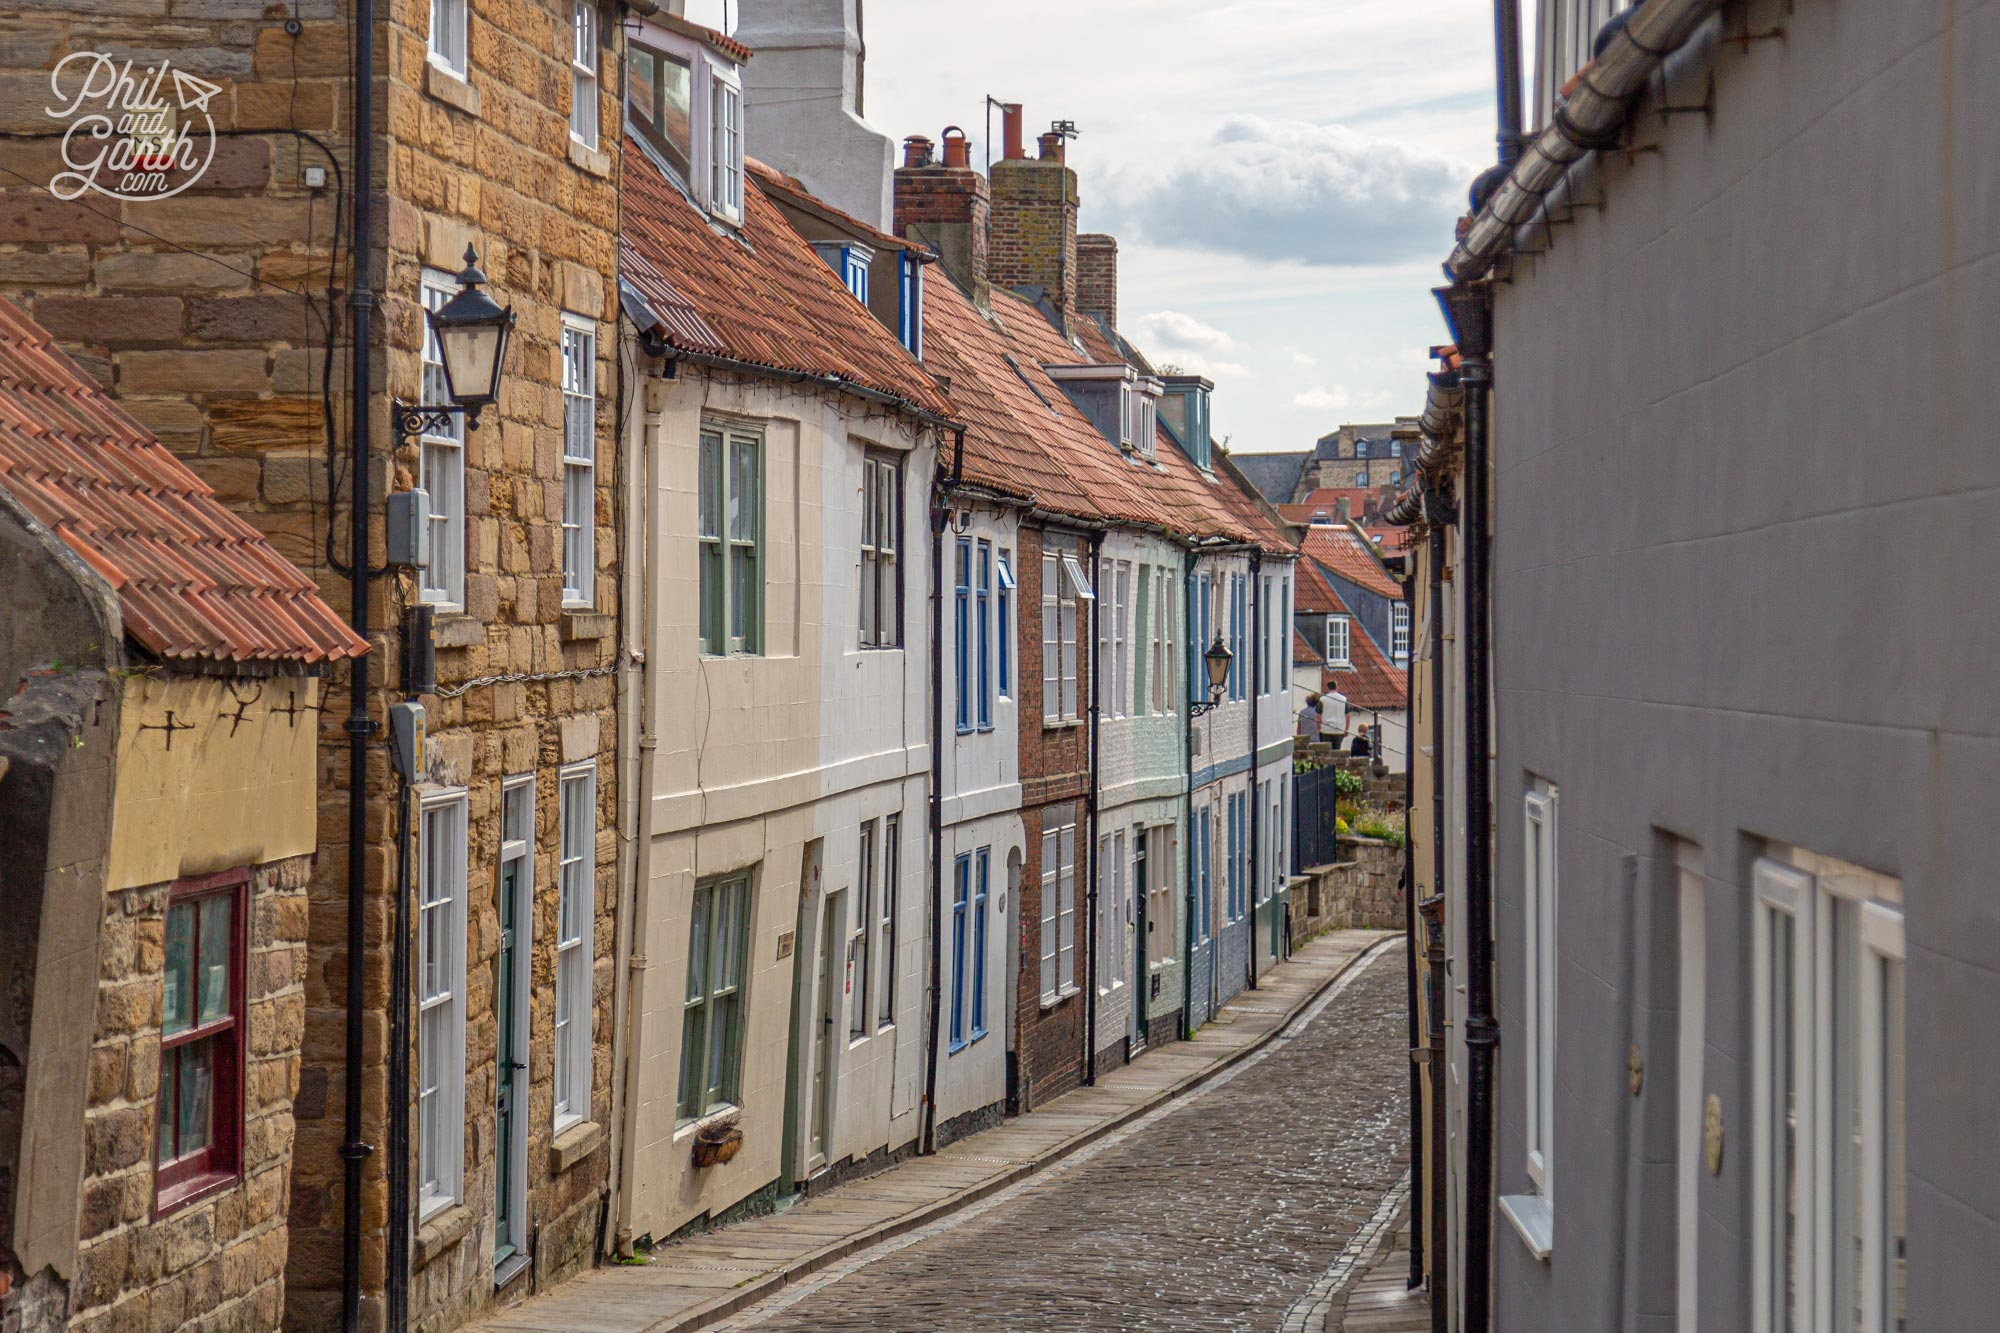 Attractions in Whitby - picturesque winding streets in the old town